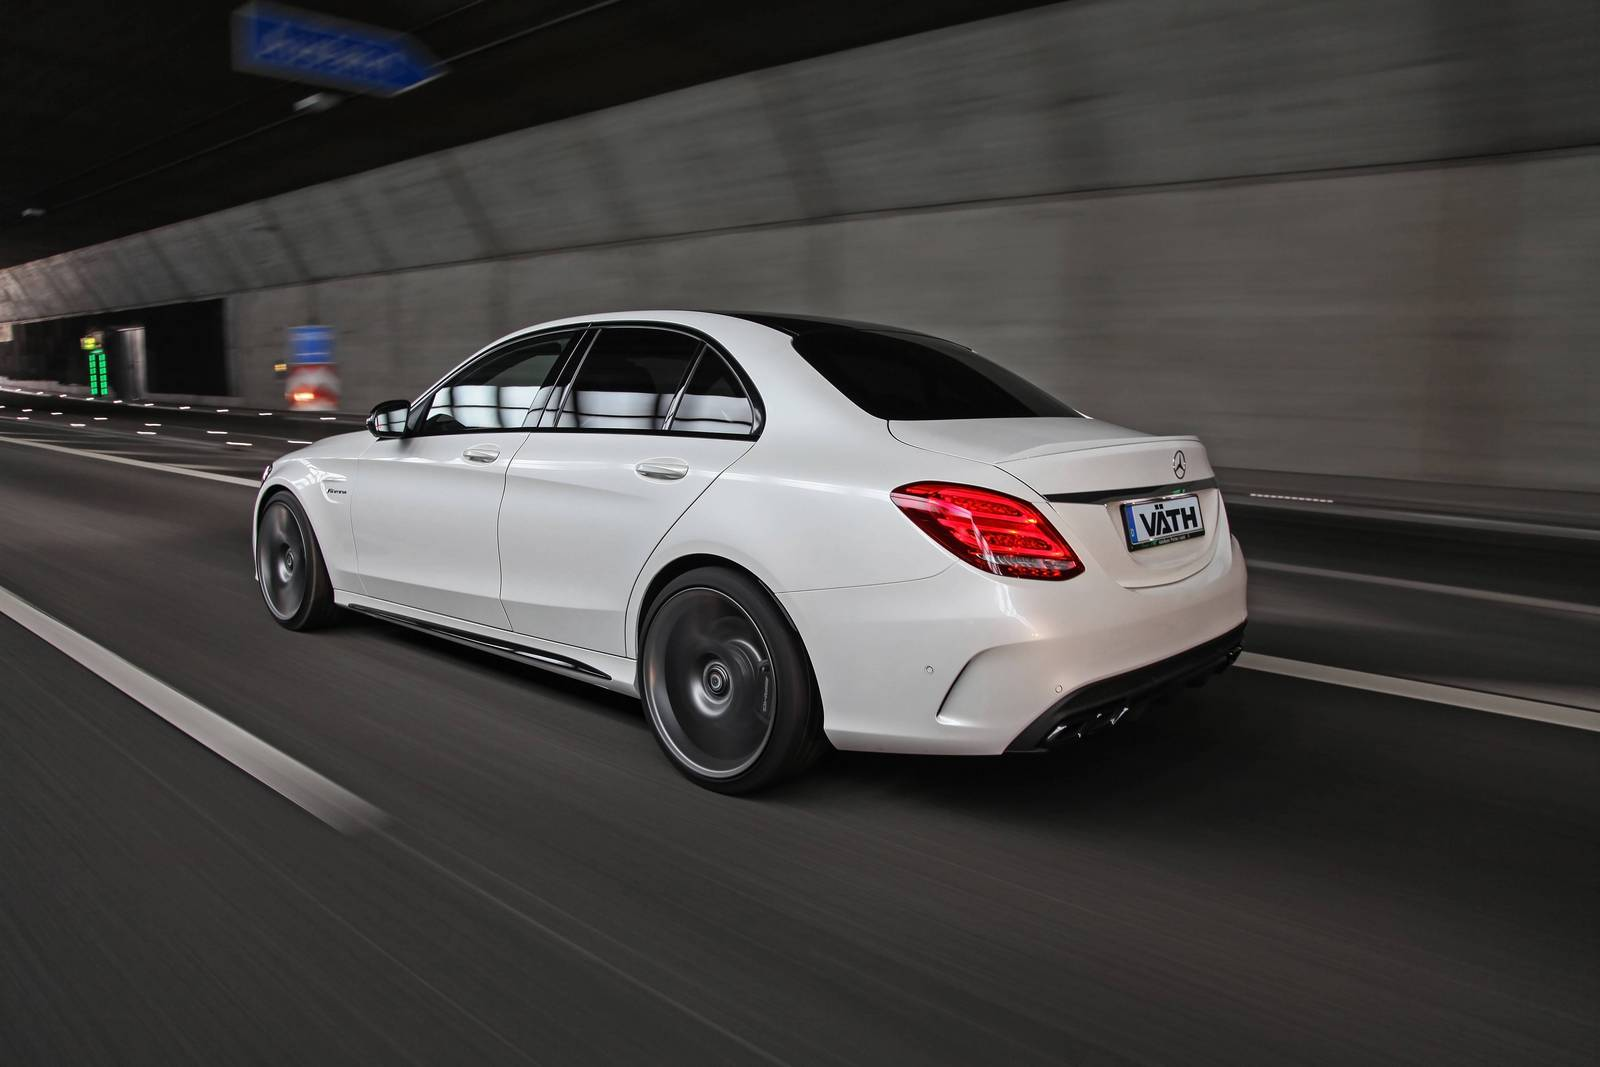 Official: 609hp Mercedes-AMG C63 by Vath - GTspirit